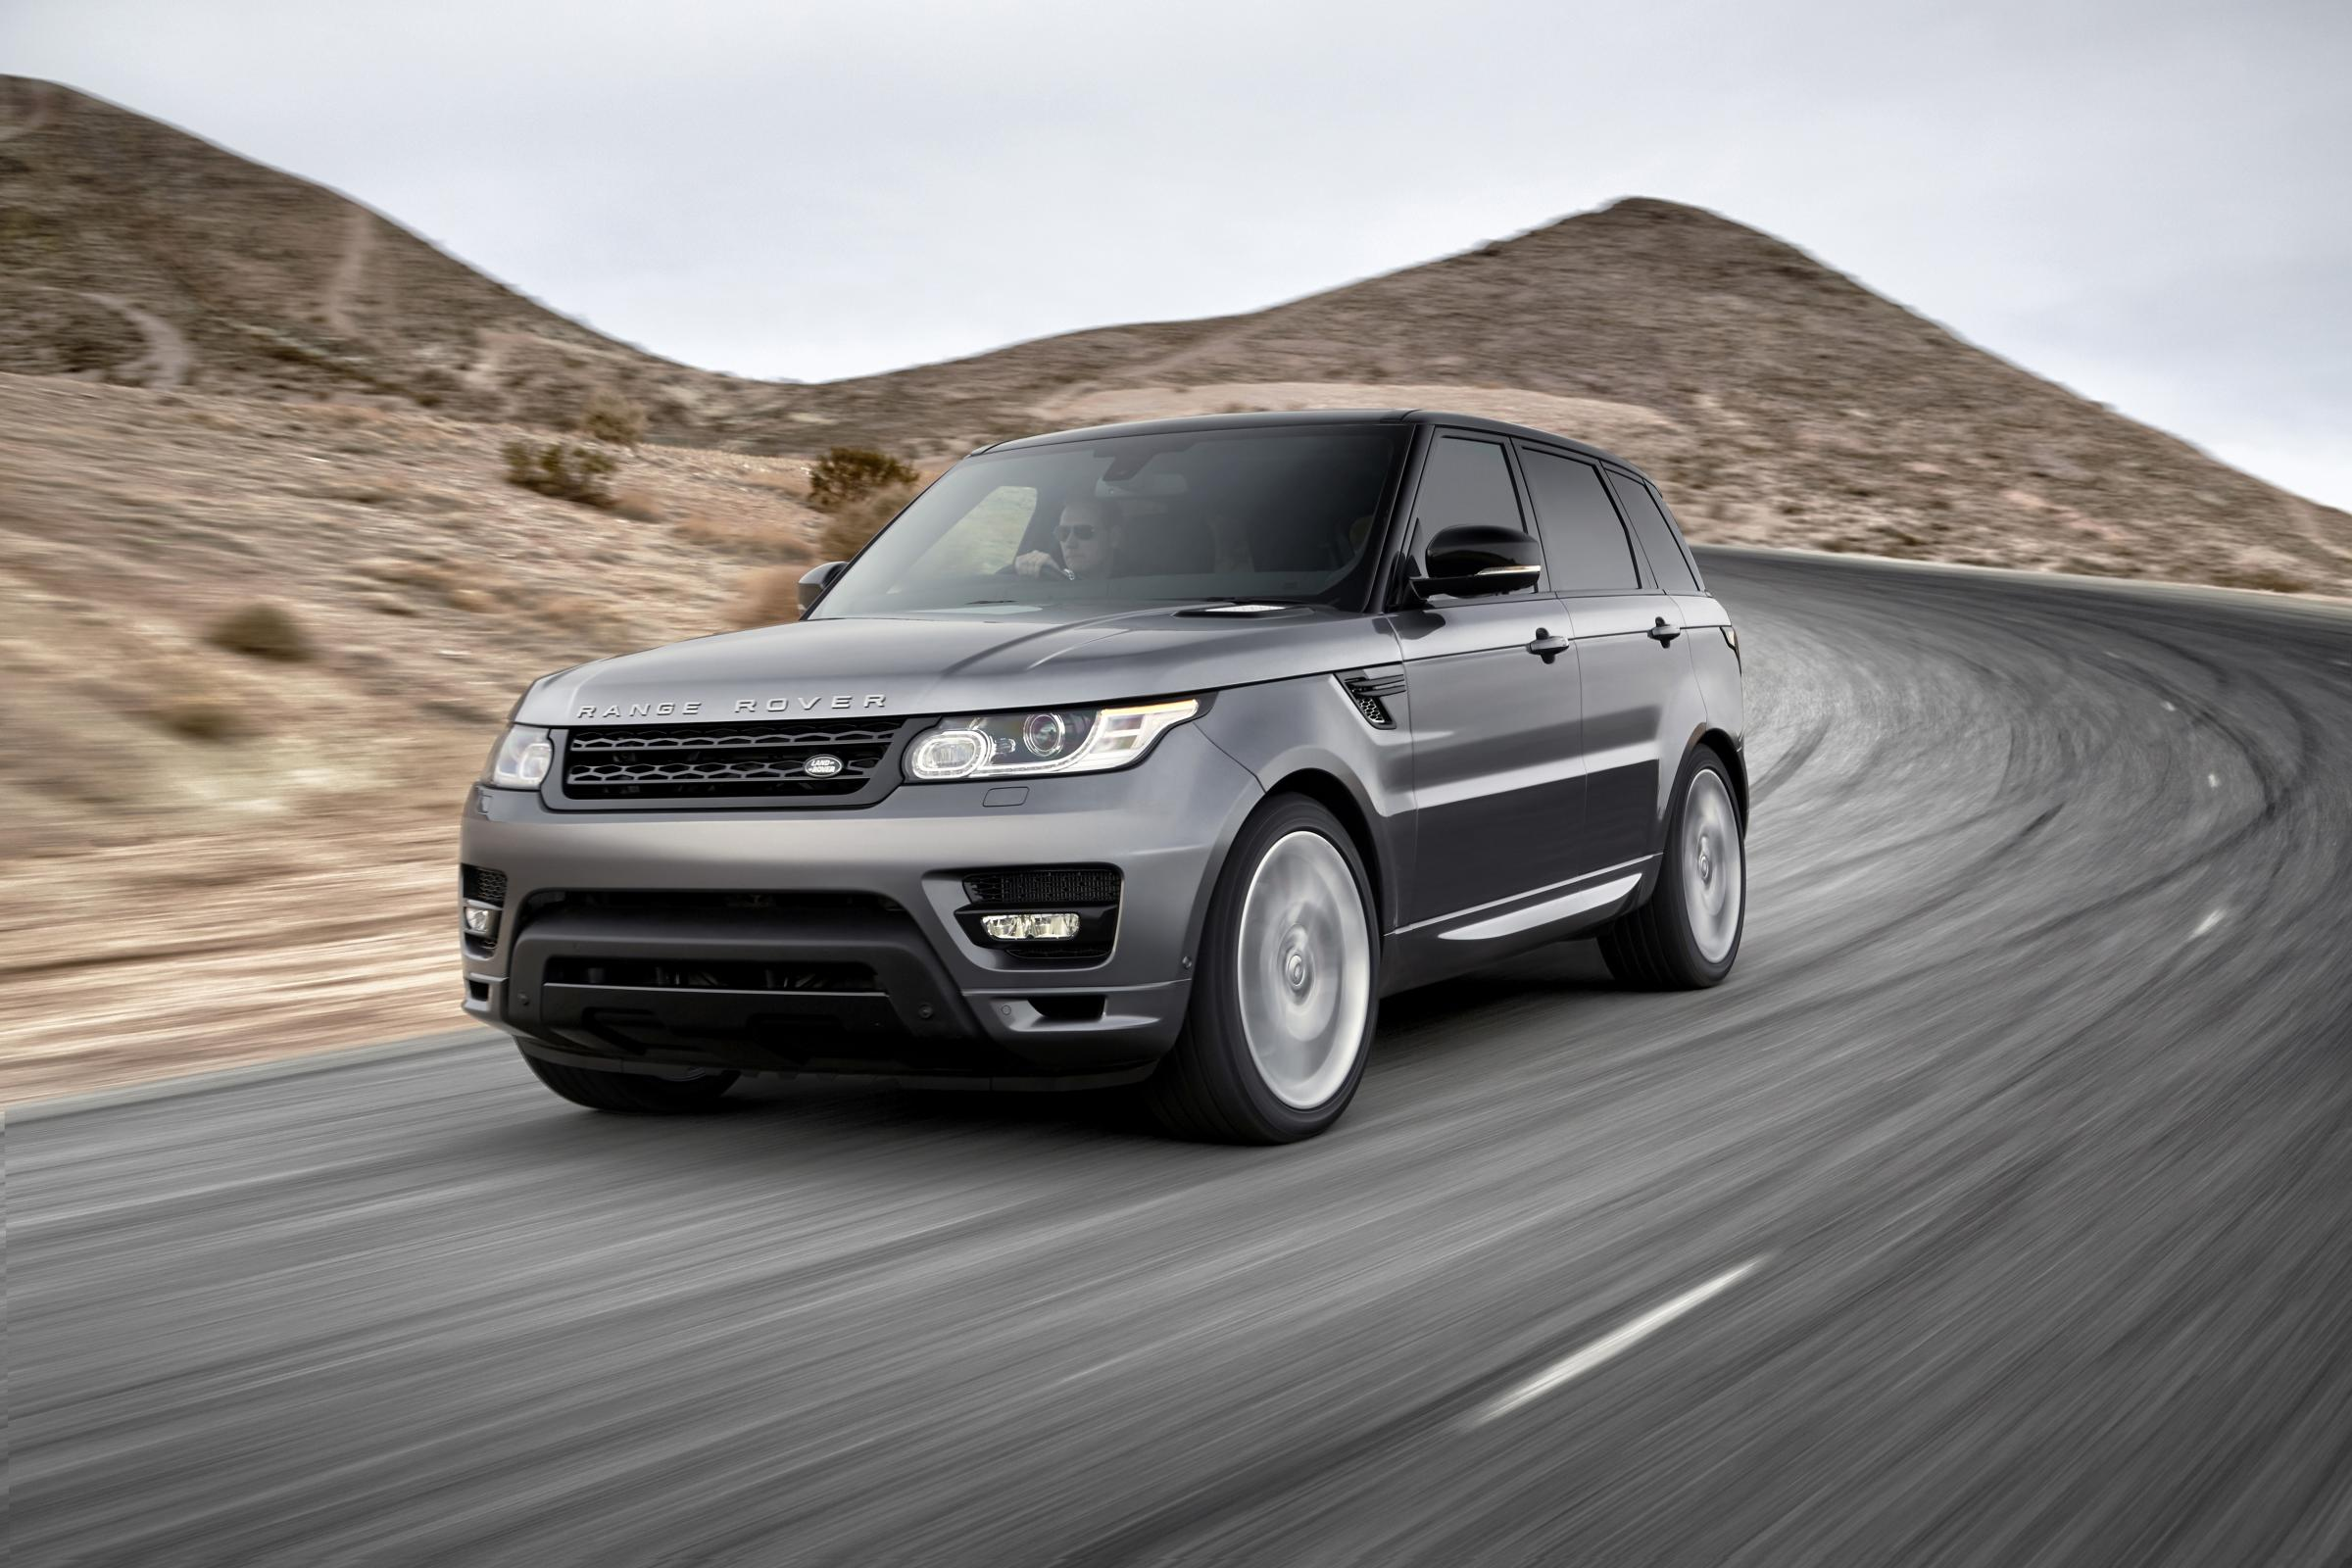 Range Rovers are being targeted